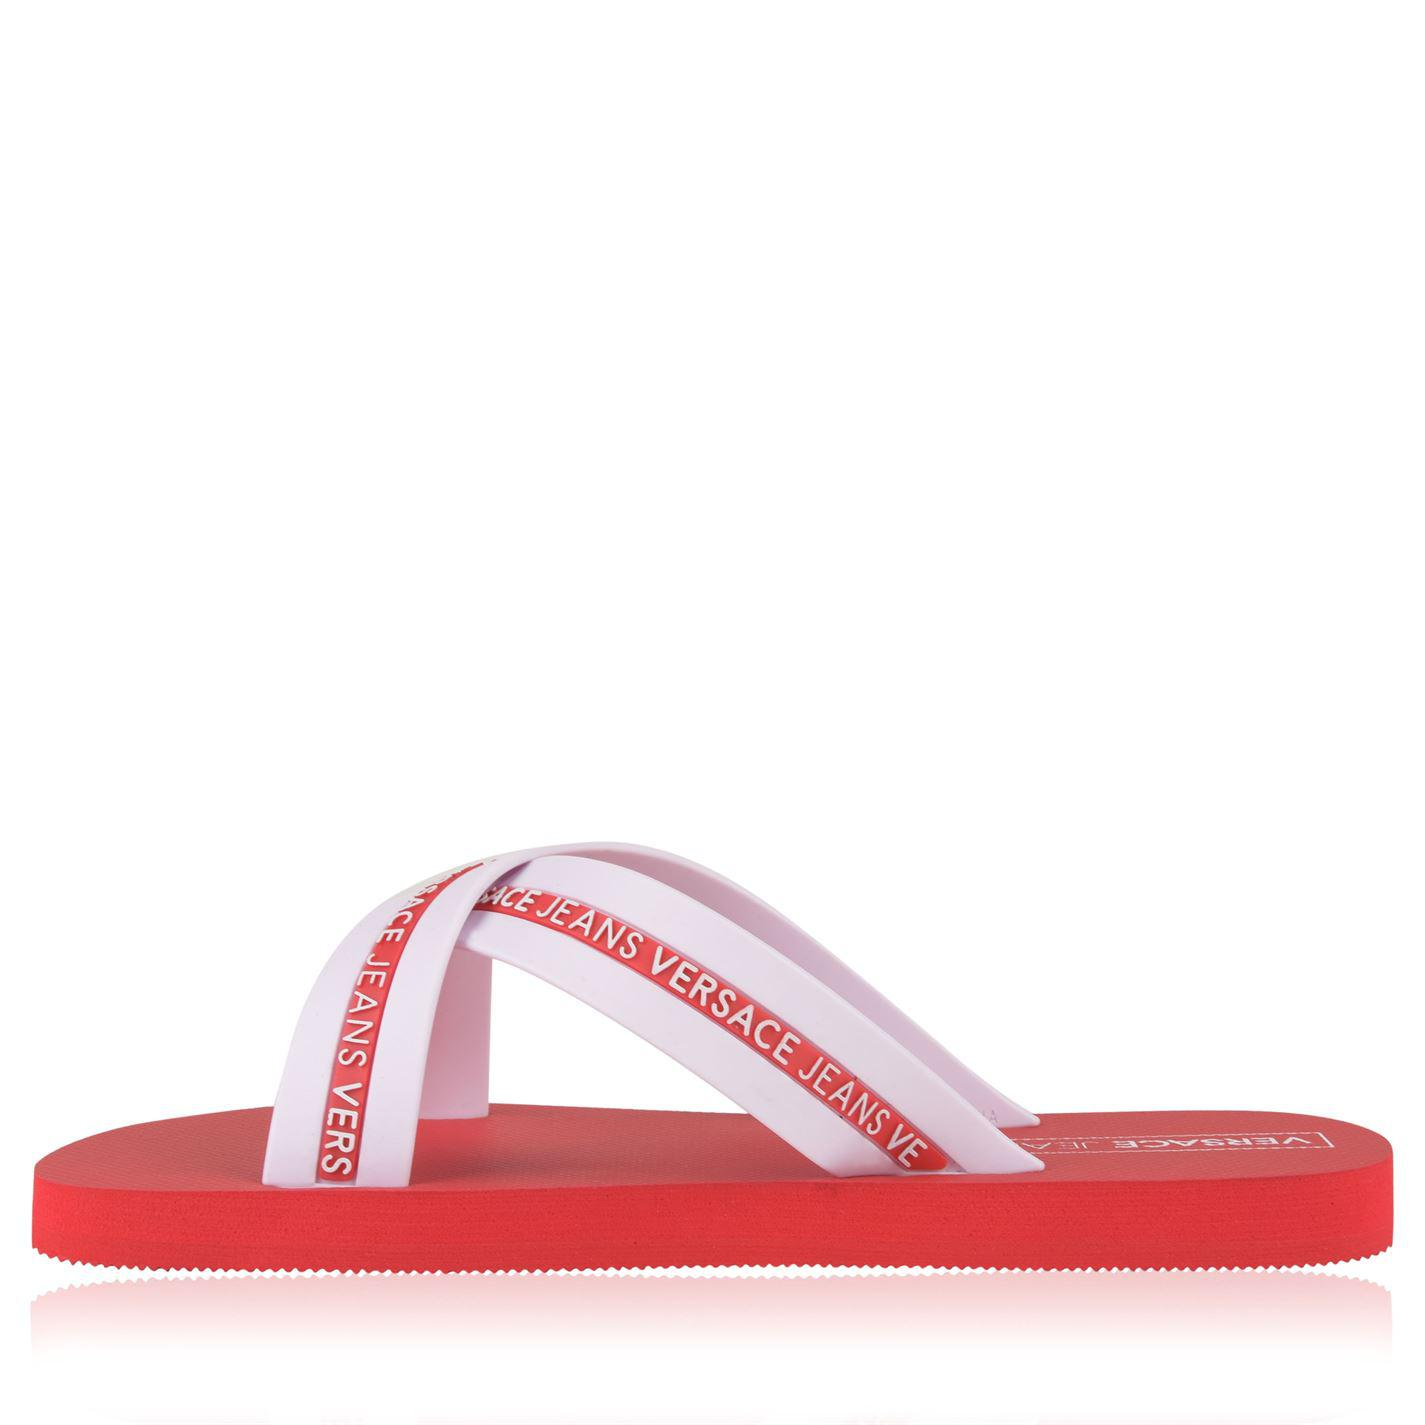 0c28a3d60ca9 Versace Jeans Mare Logo Flip Flops in Red for Men - Lyst